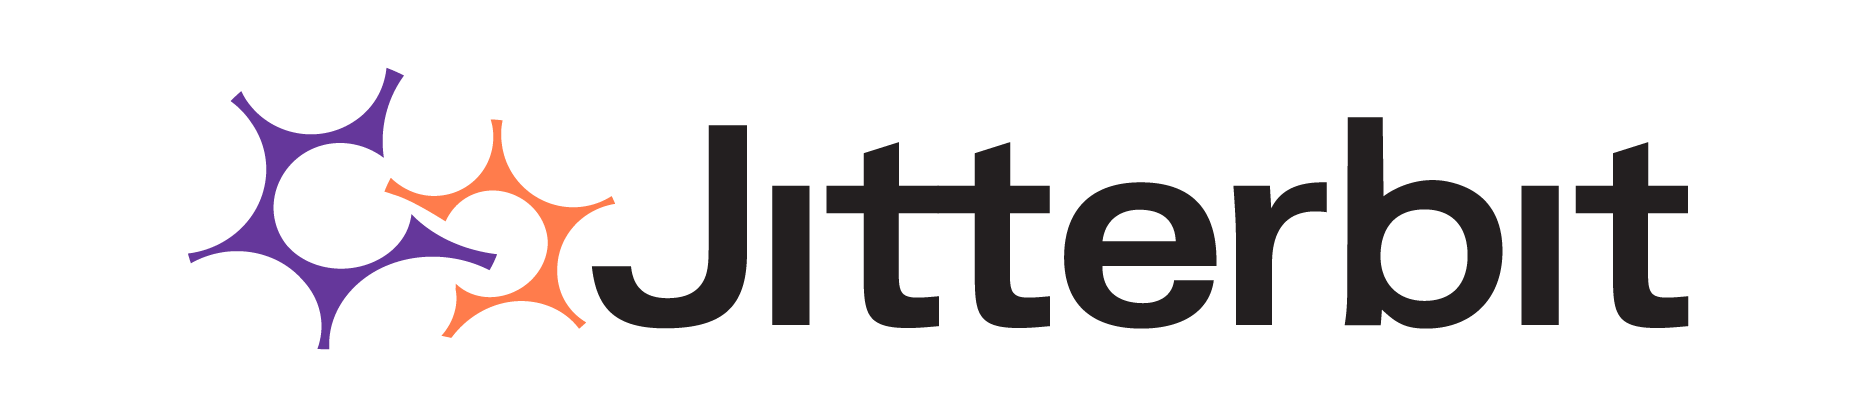 Connect SaaS, cloud and on-premise applications while instantly infusing intelligence into your business processes using Jitterbit. It also enables the rapid creation of new APIs from any existing enterprise application or data. -